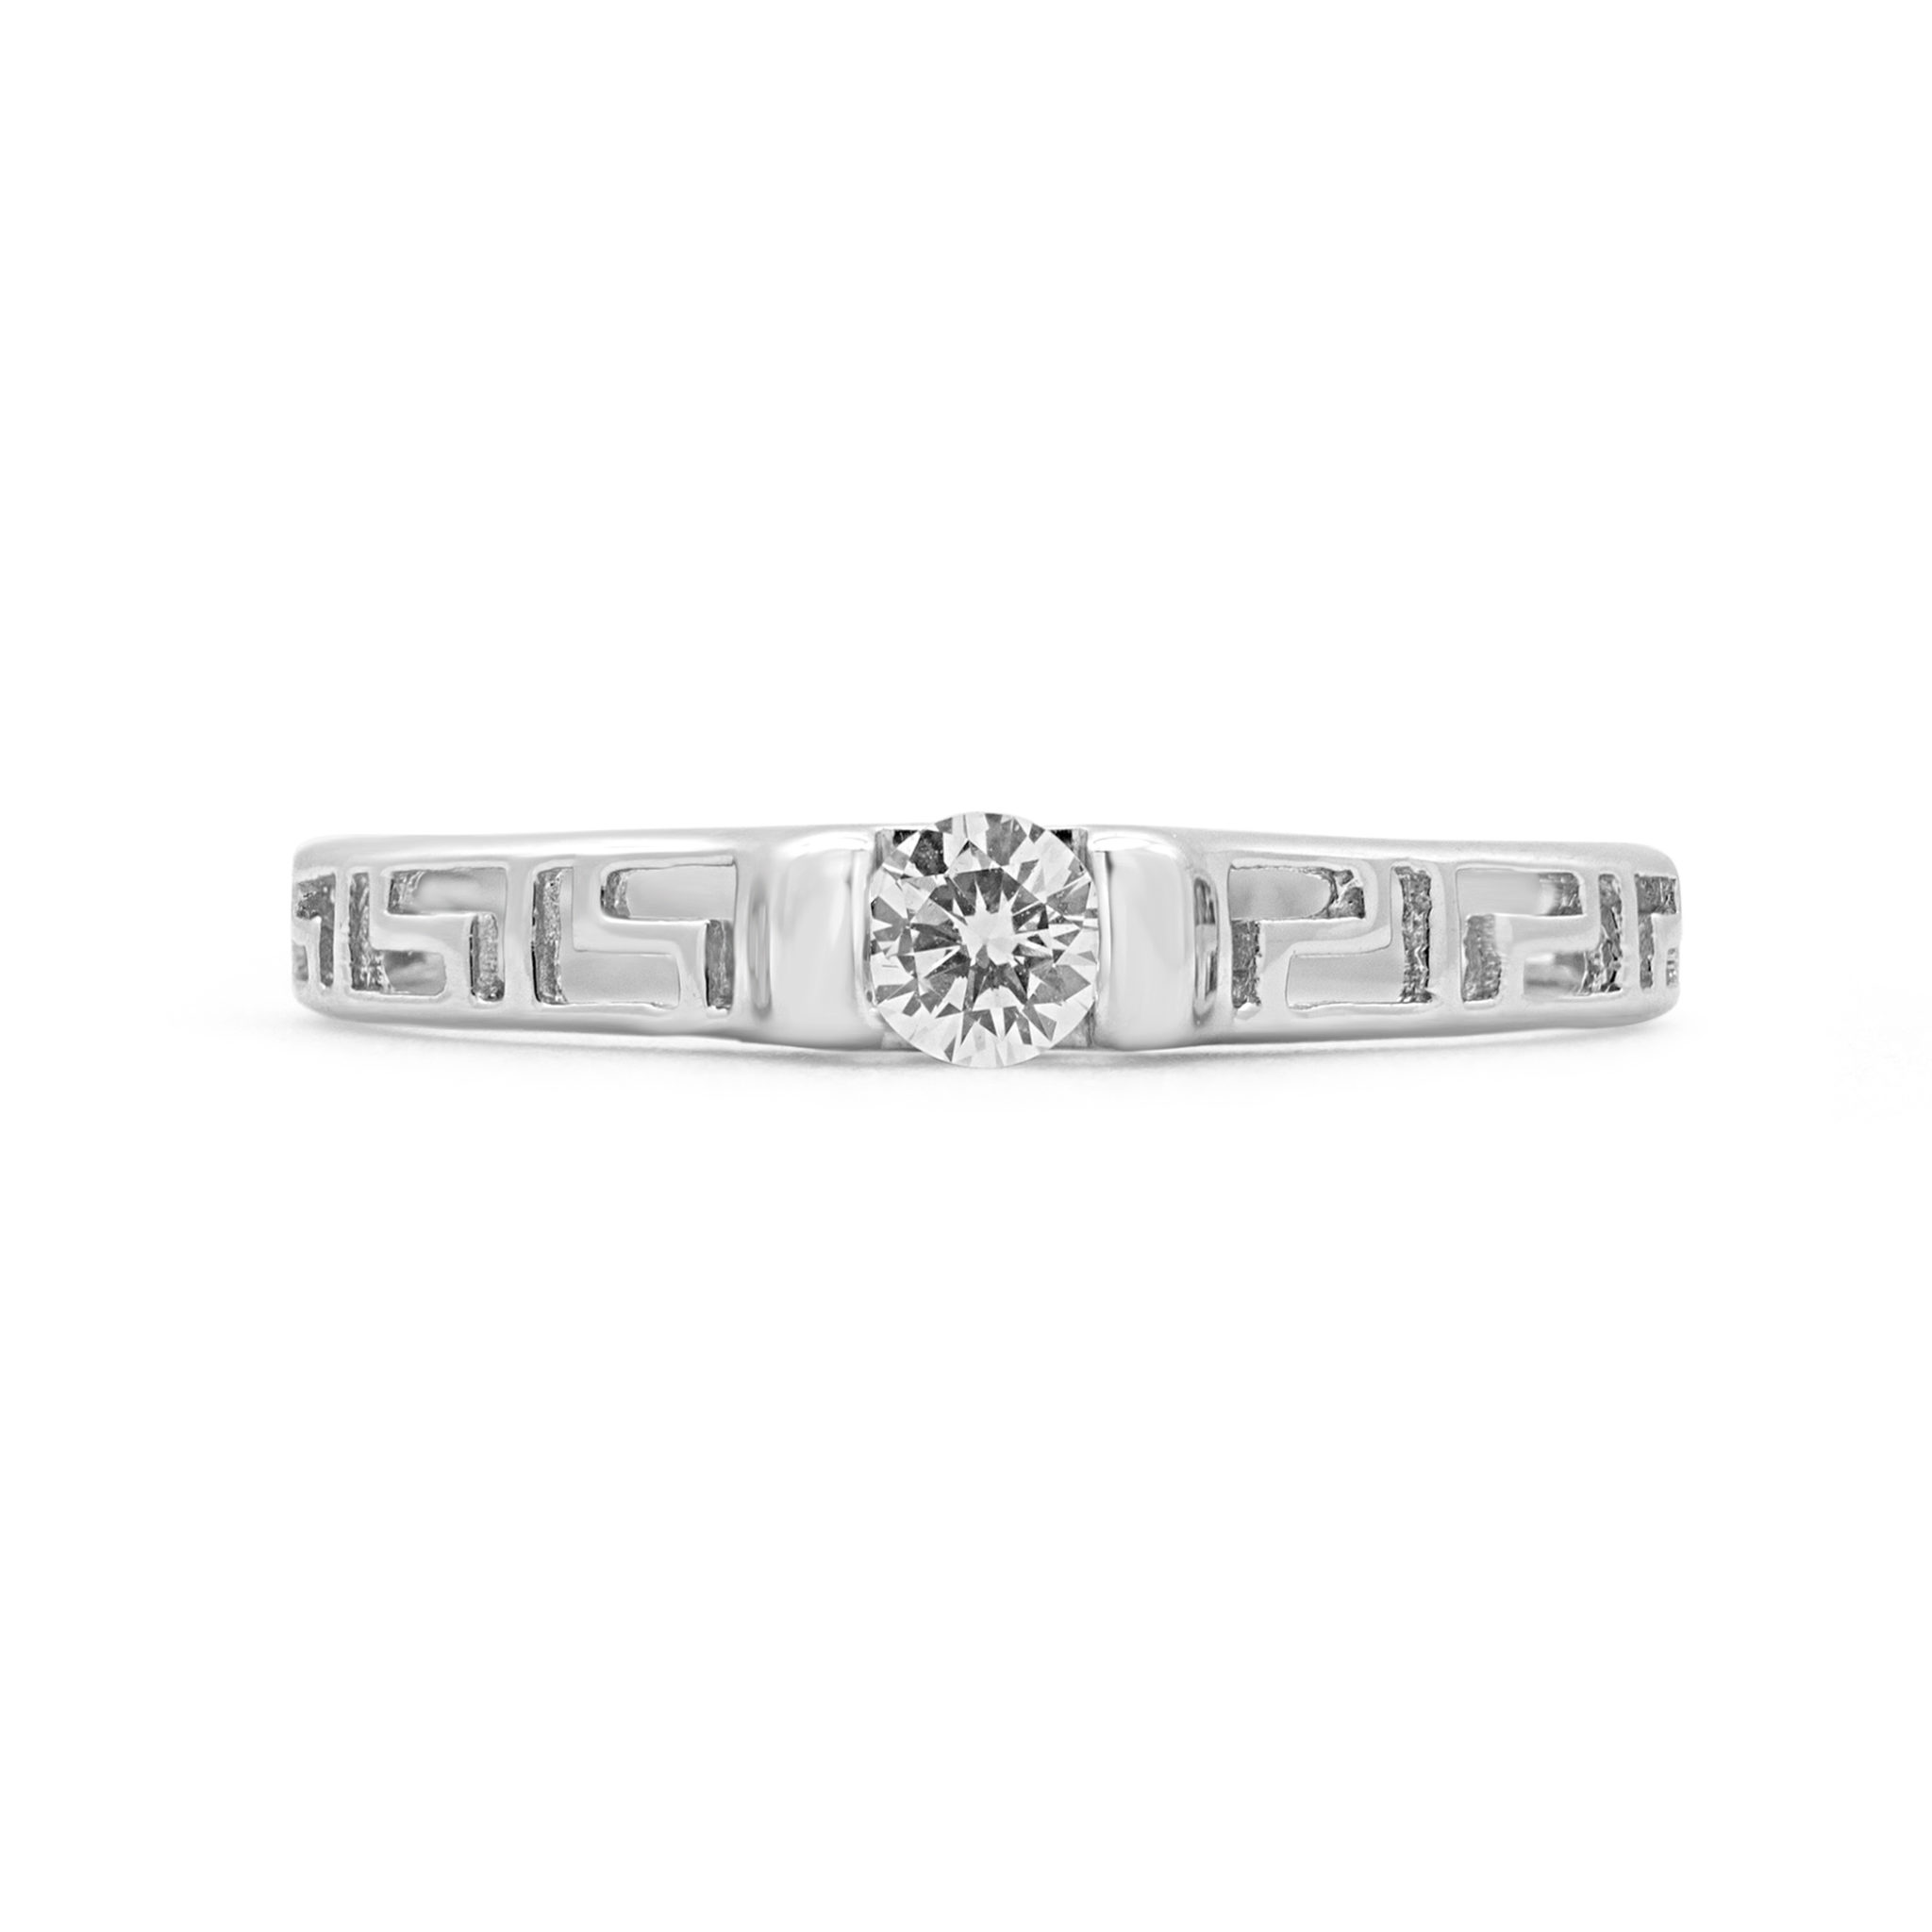 PRECIOUS GREEK KEY SOLITAIRE ENGAGEMENT RING IN 14K WHITE GOLD